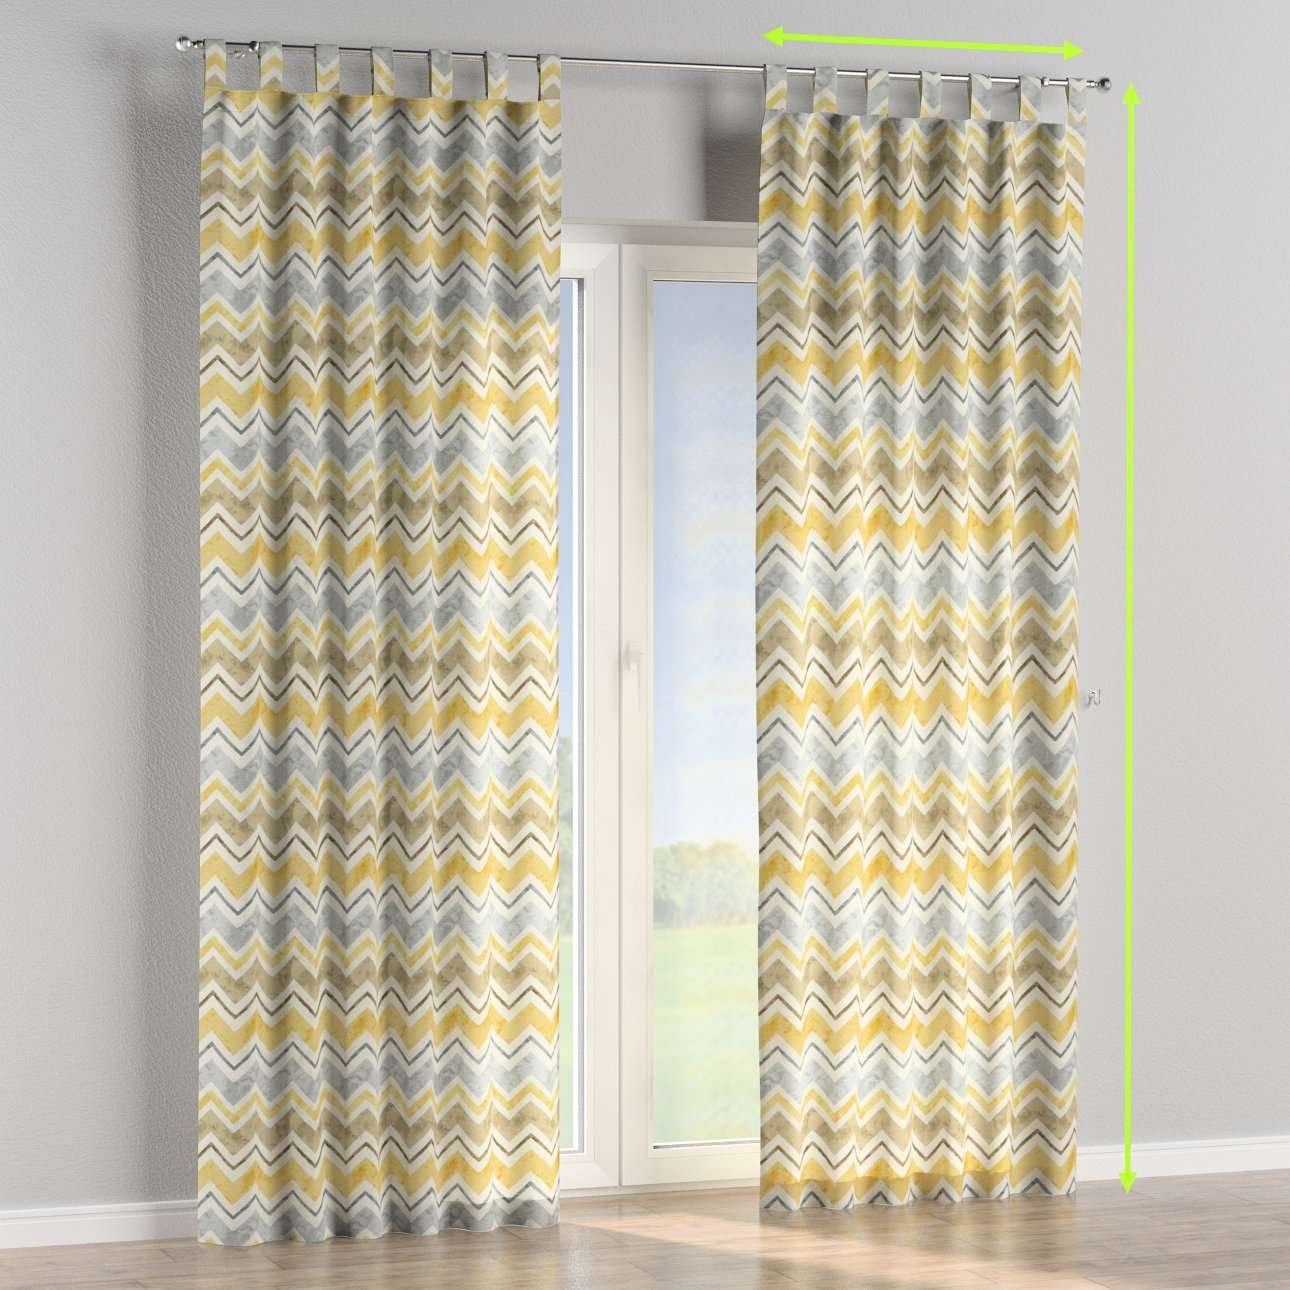 Tab top curtains in collection Acapulco, fabric: 141-39